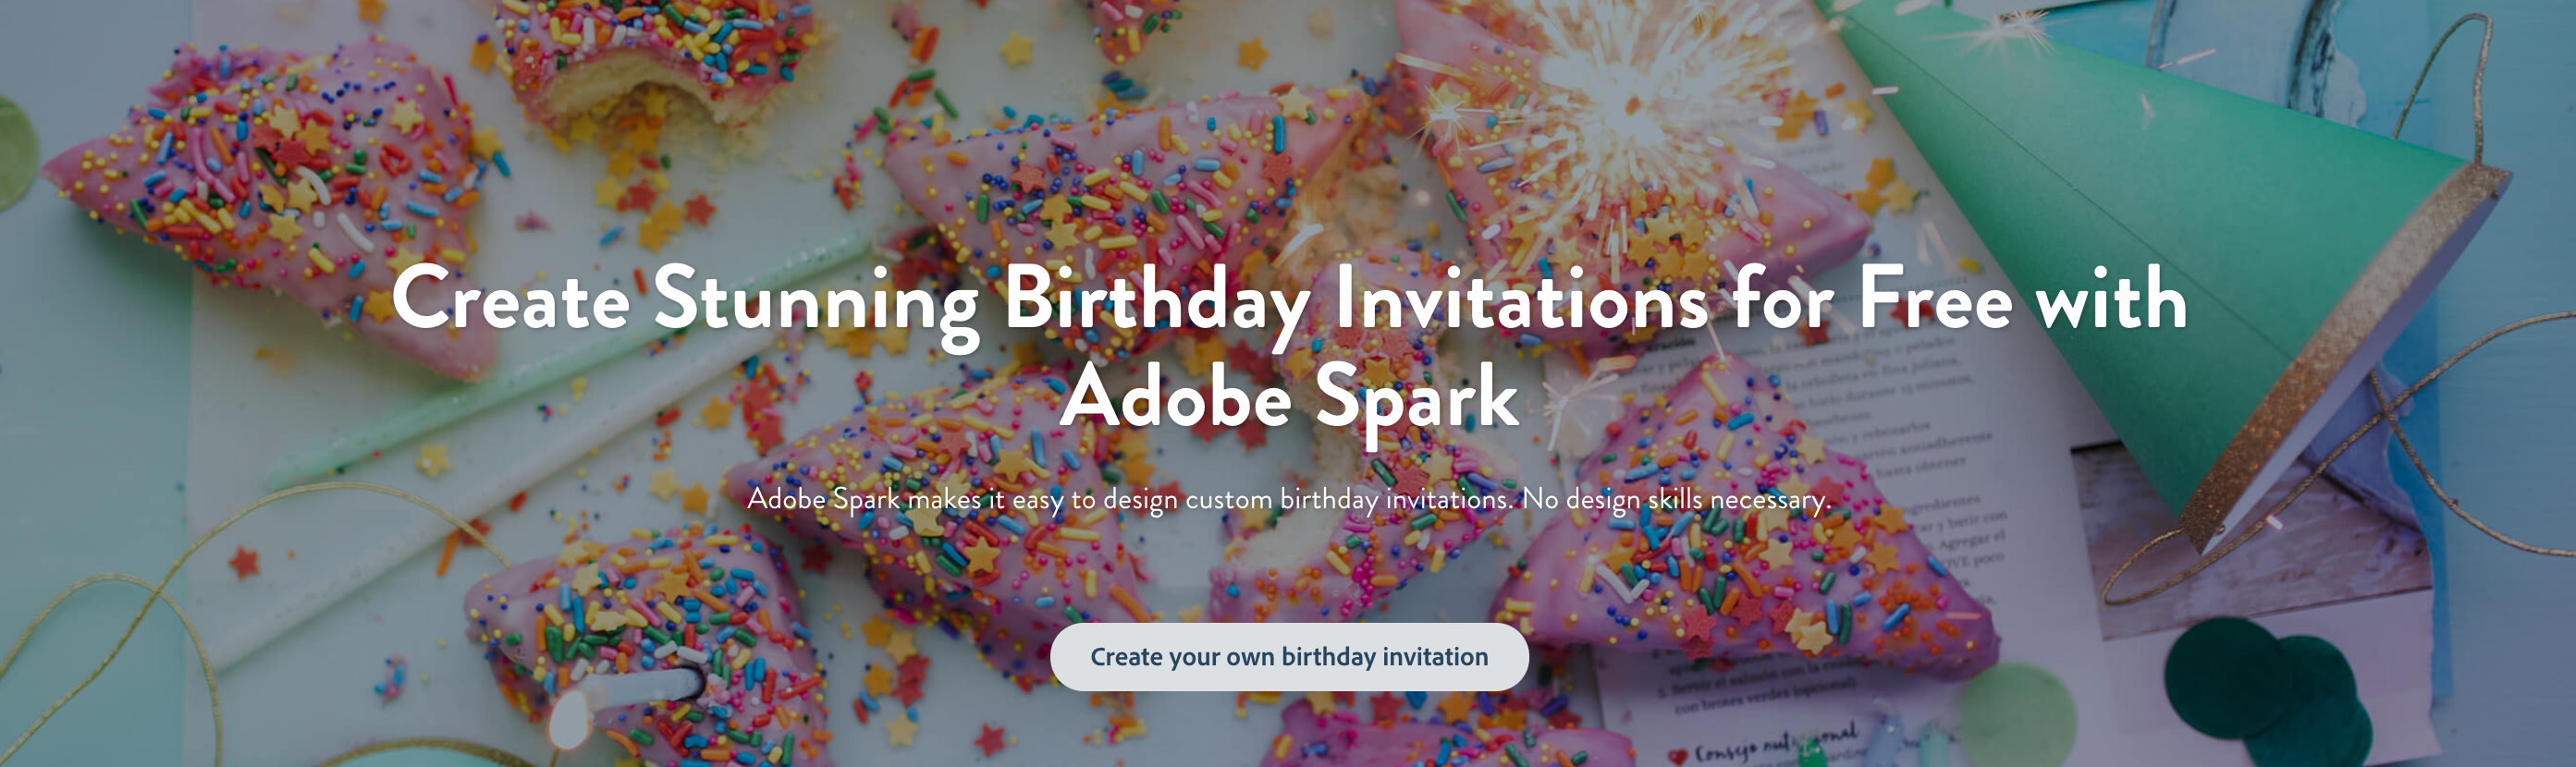 25 Blank Birthday Party Invitation Template Online PSD File for Birthday Party Invitation Template Online